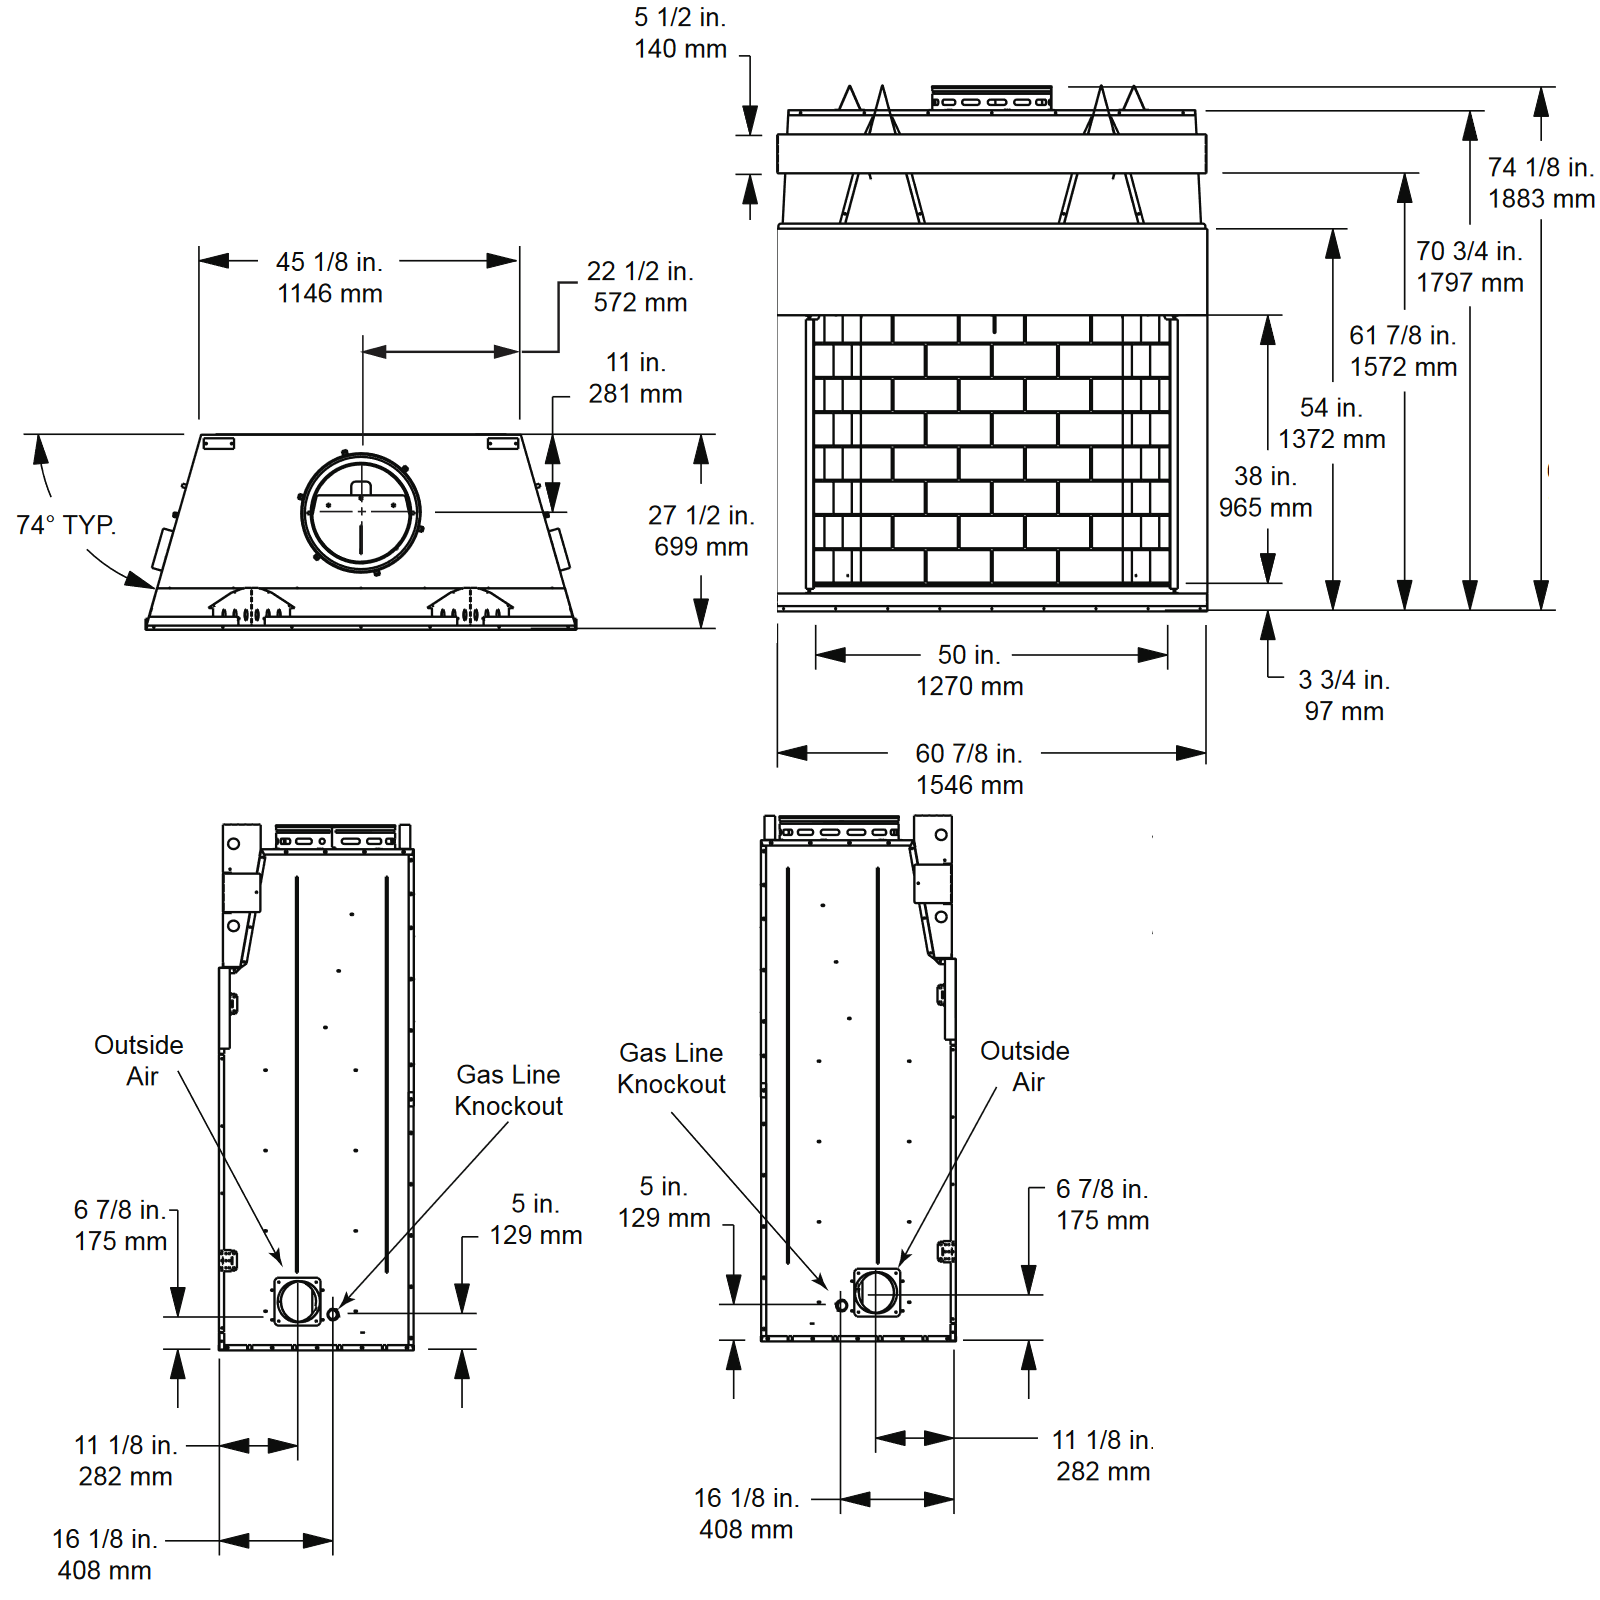 ASH50 Technical Drawing 1